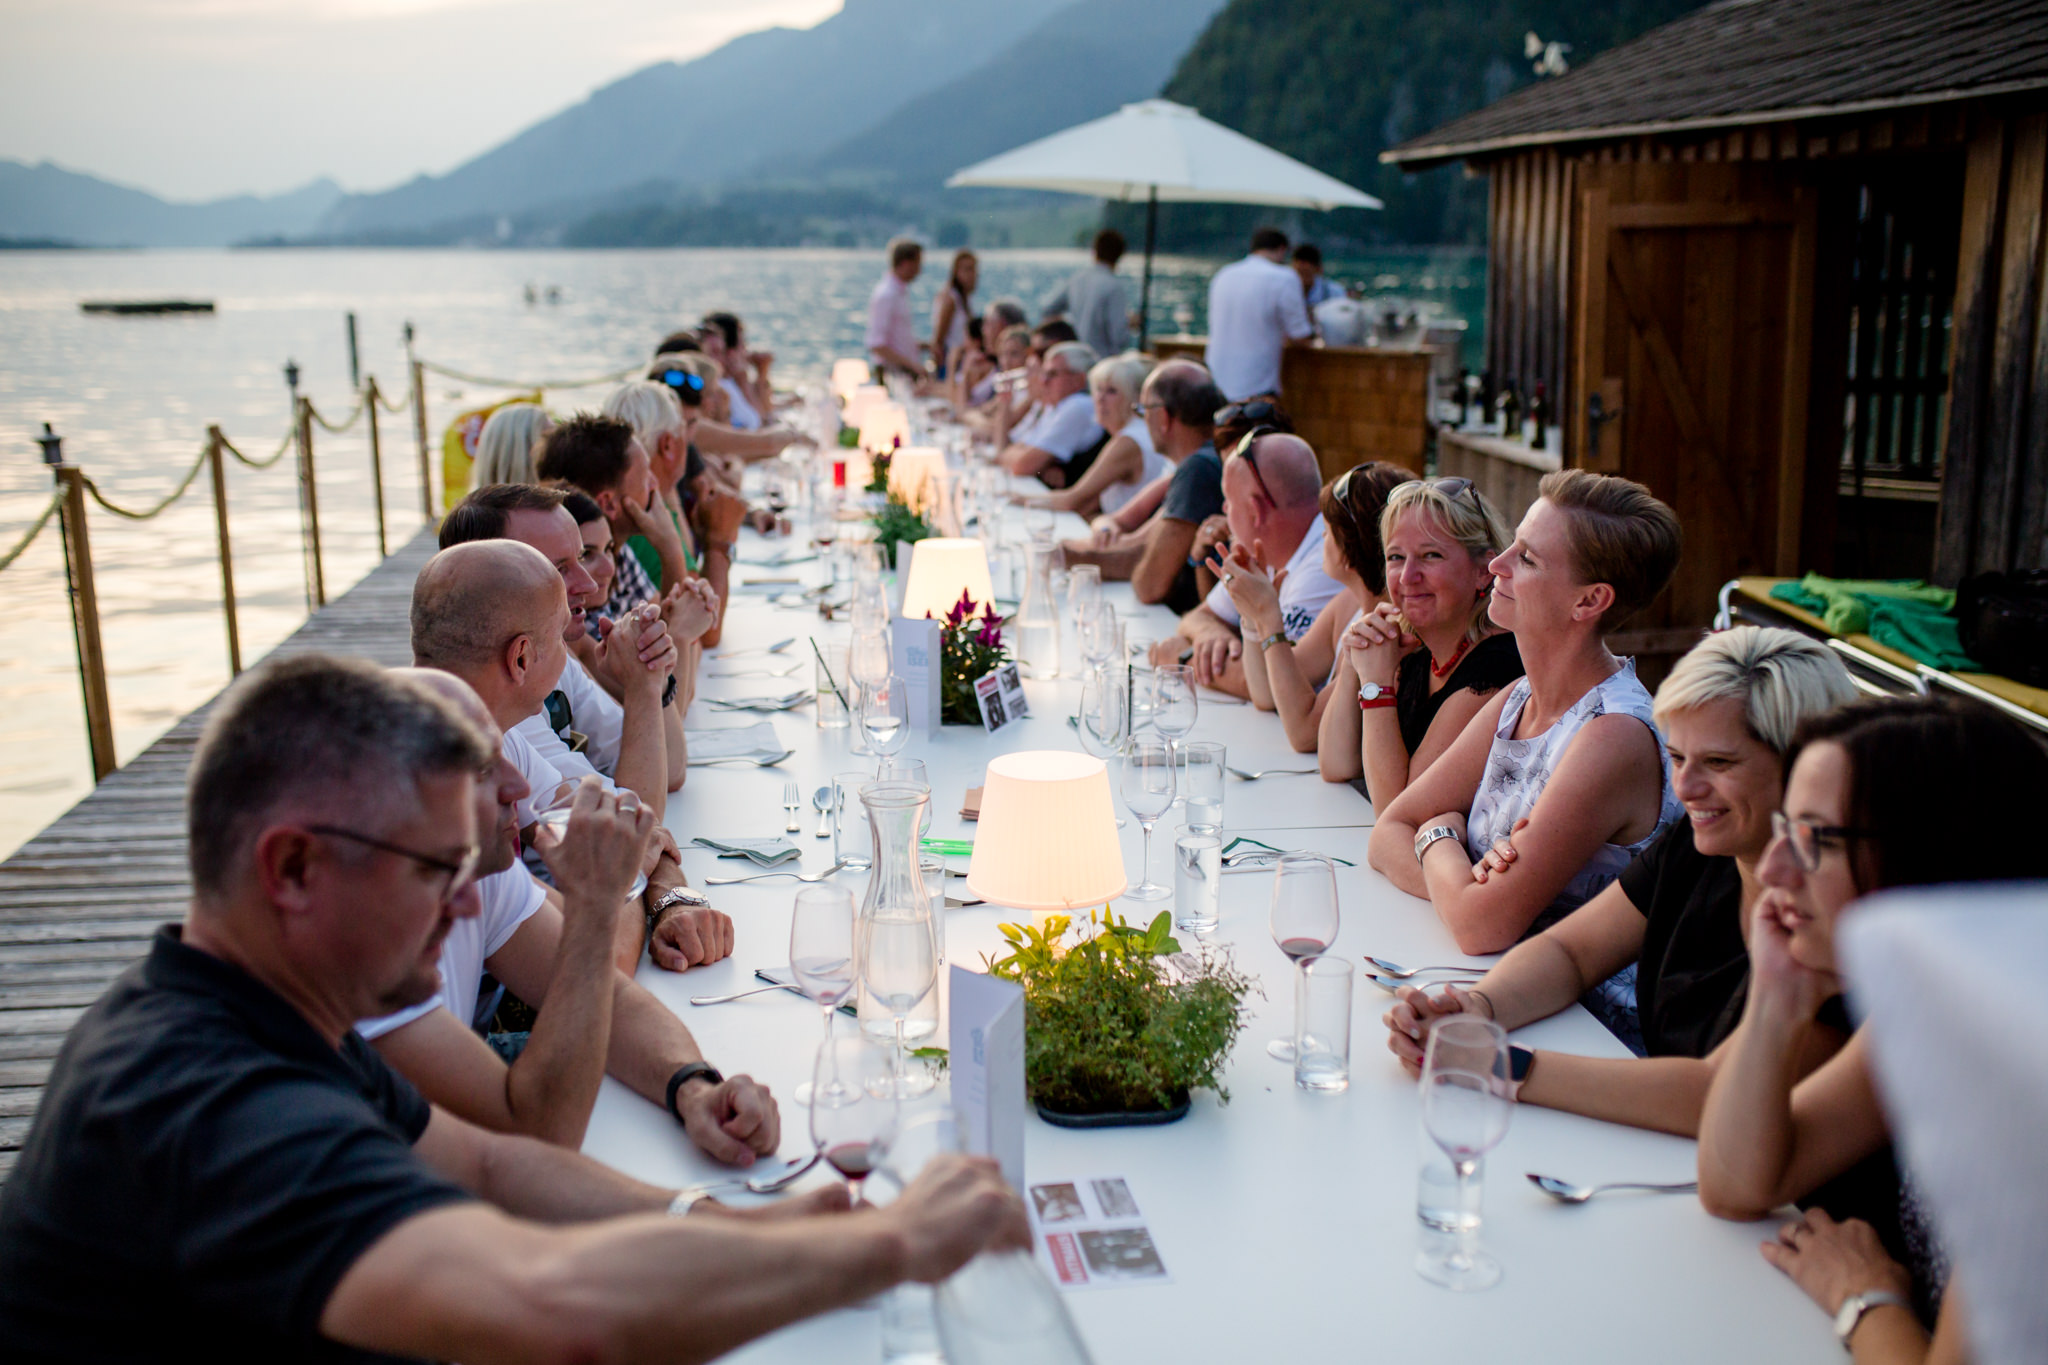 048-Wine-and-Dine-Wolfgangsee-Kirchenwirt-2019-Stefanie-Reindl-Photography-Web